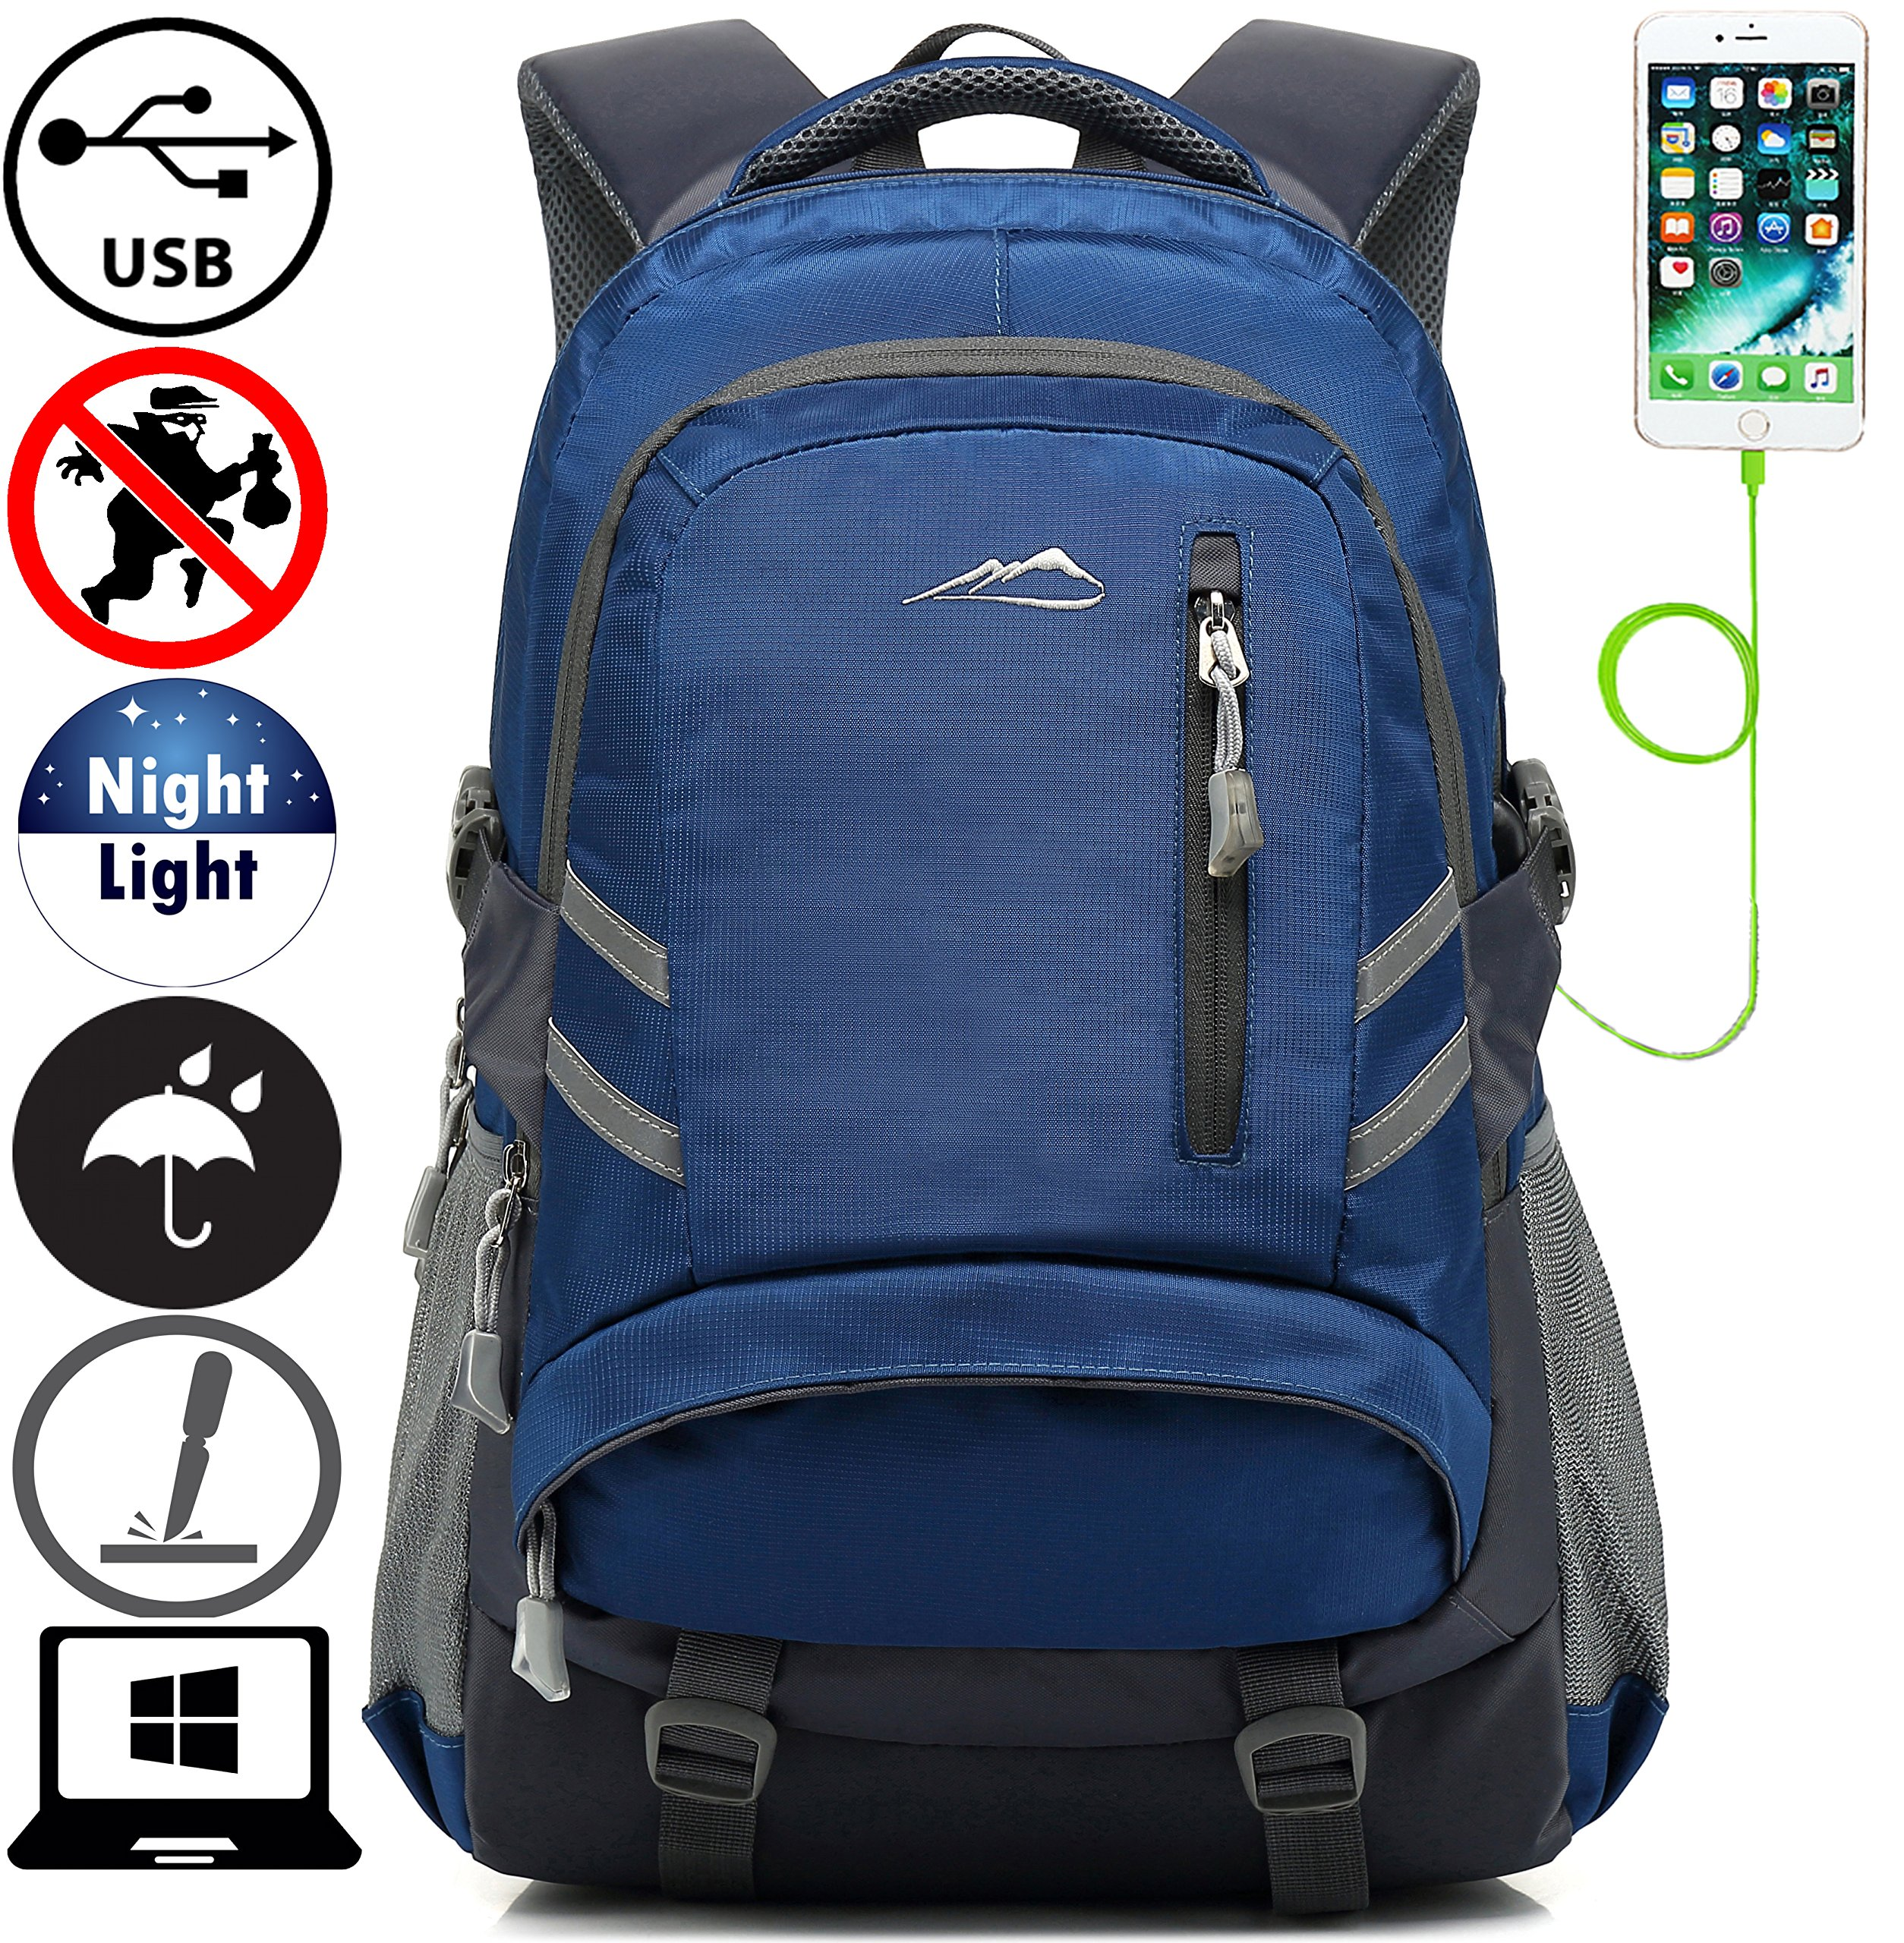 Backpack Bookbag For School College Student Travel Business With USB Charging Port Water Resistant Fit Laptop Up to 15.6 Inch Anti theft Night Light Reflective (Navy Blue)